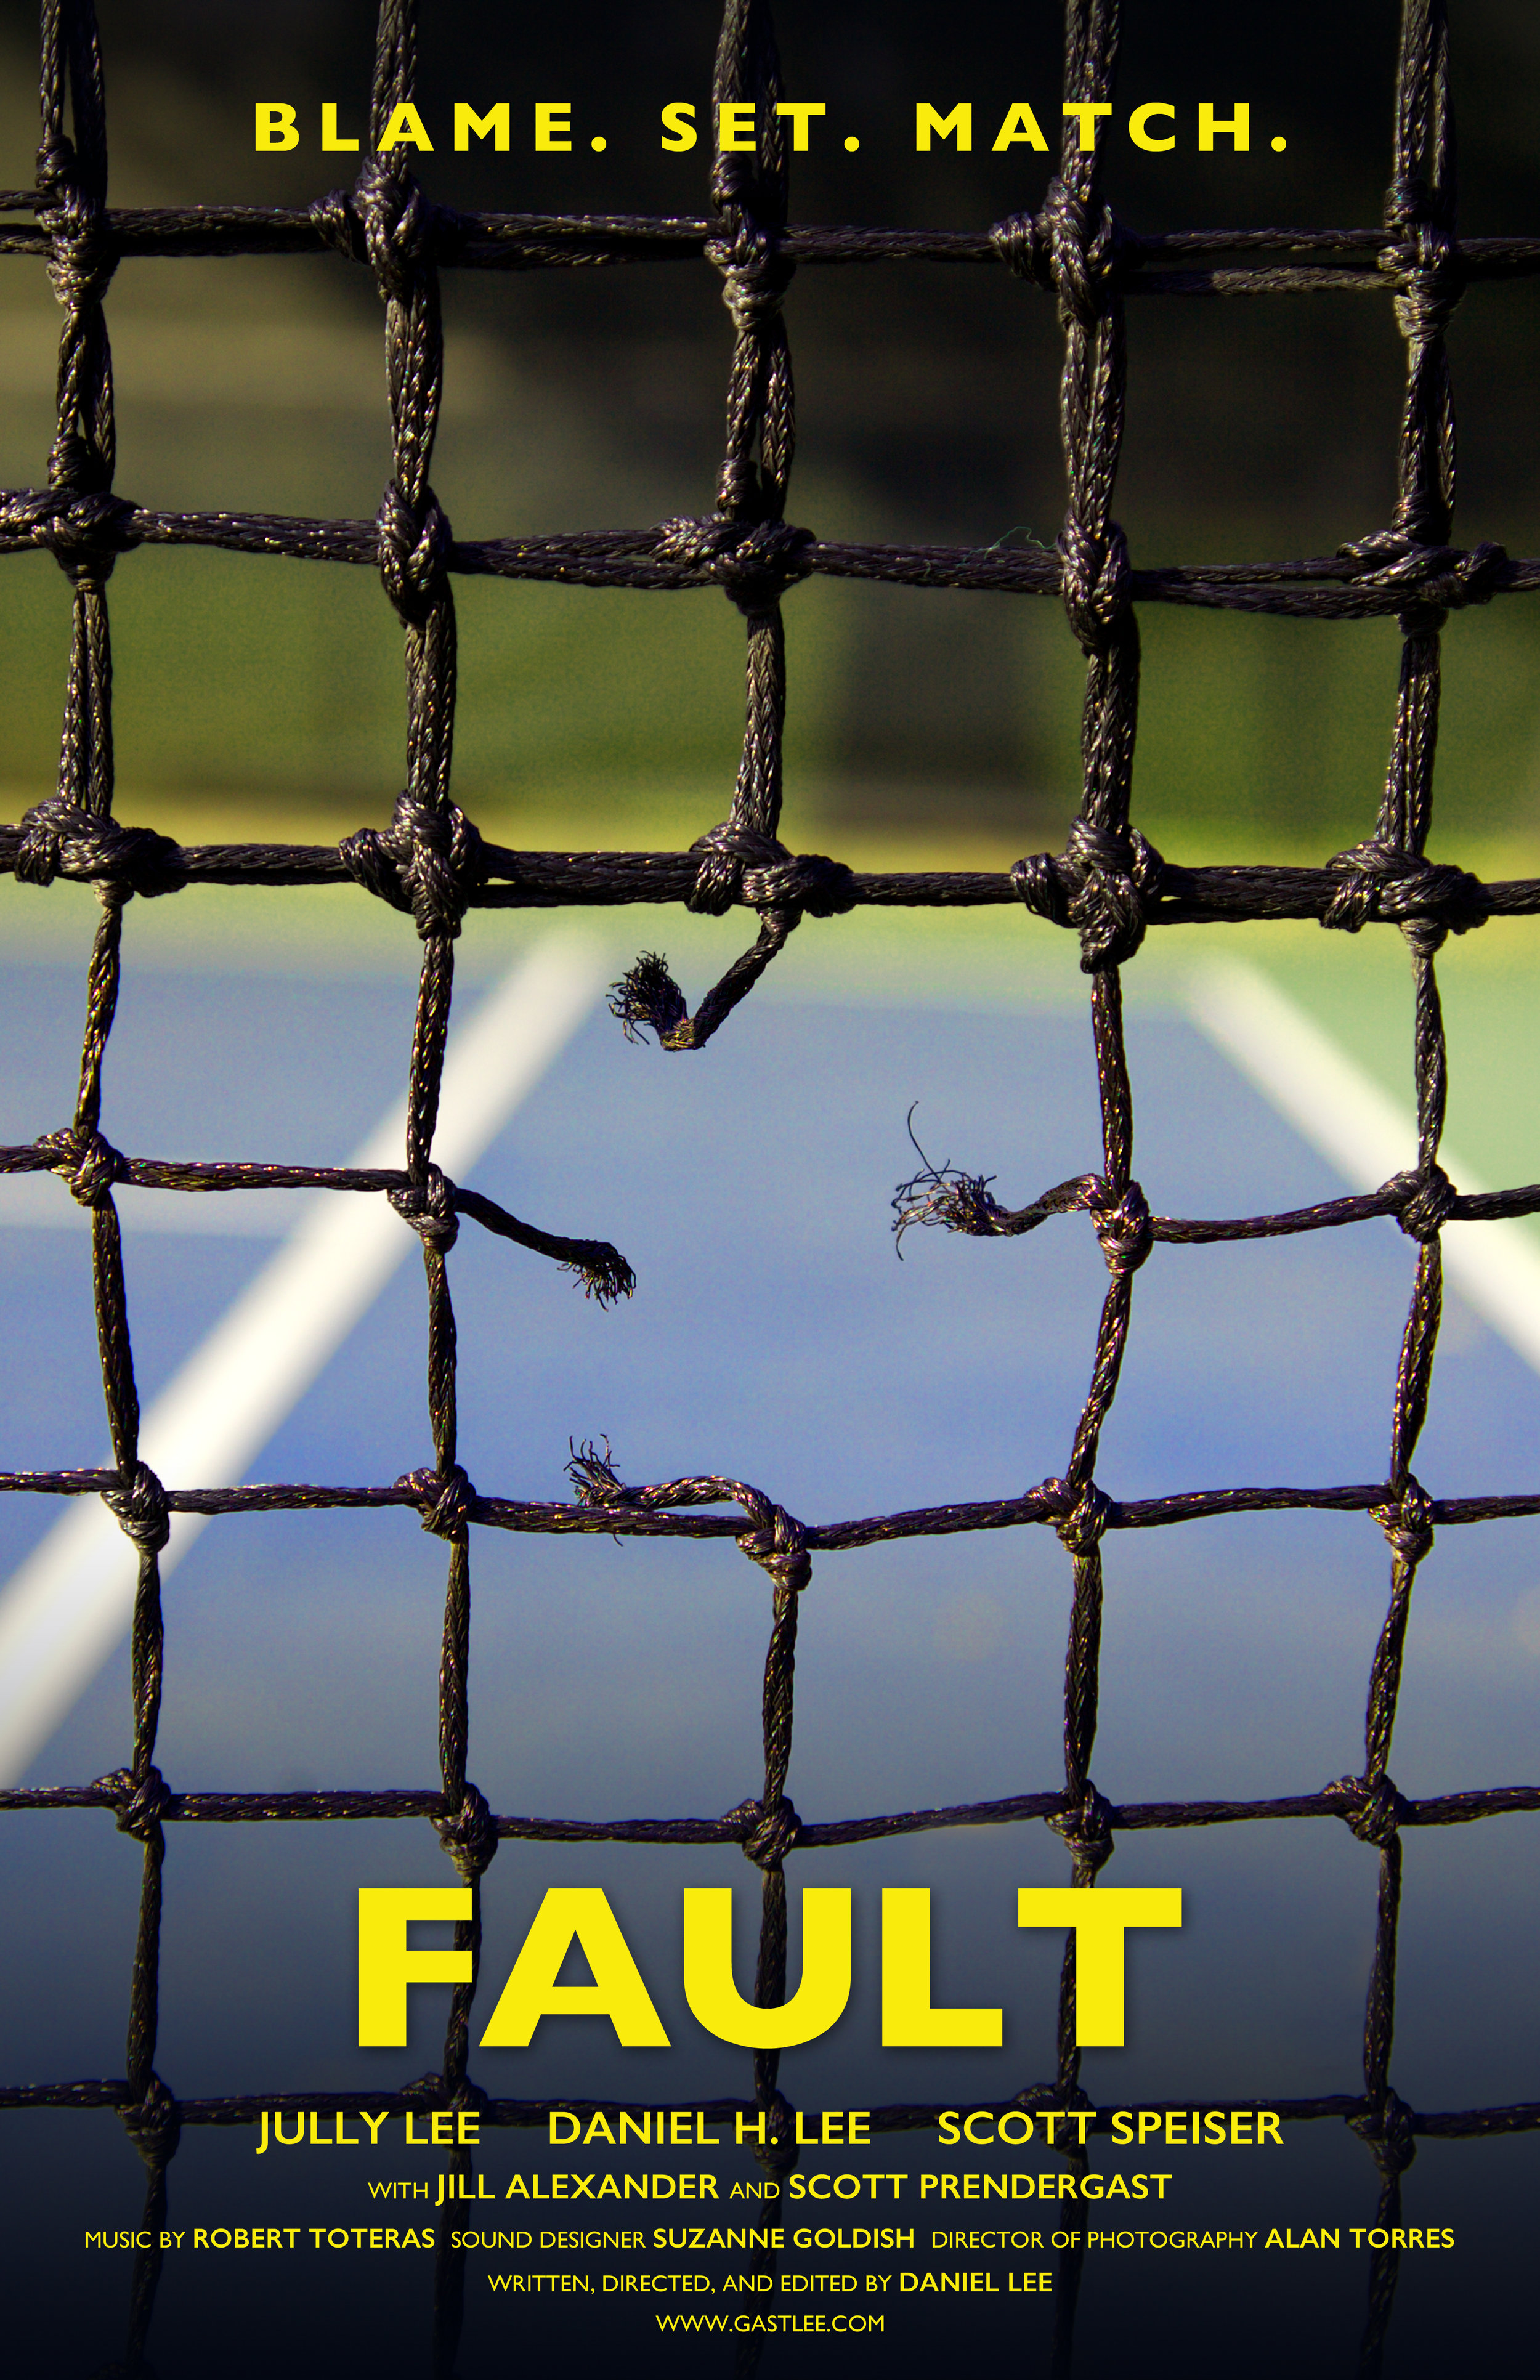 Fault - Narrative Short, Dramedy. (Writer-Director)Based on a true story, a professional tennis player hurls racist abuse at an estranged brother and sister, provoking unexpected confrontations.